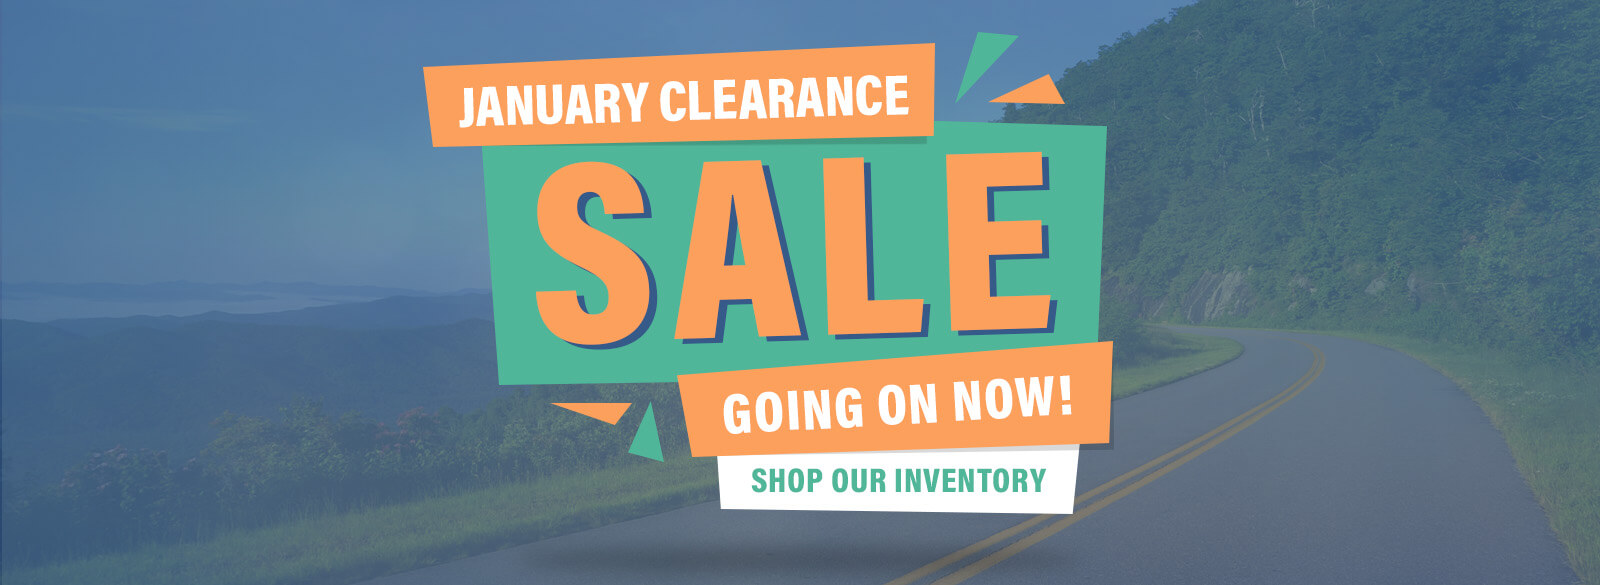 TriAm_JanuaryClearance_Banner_011320.jpg